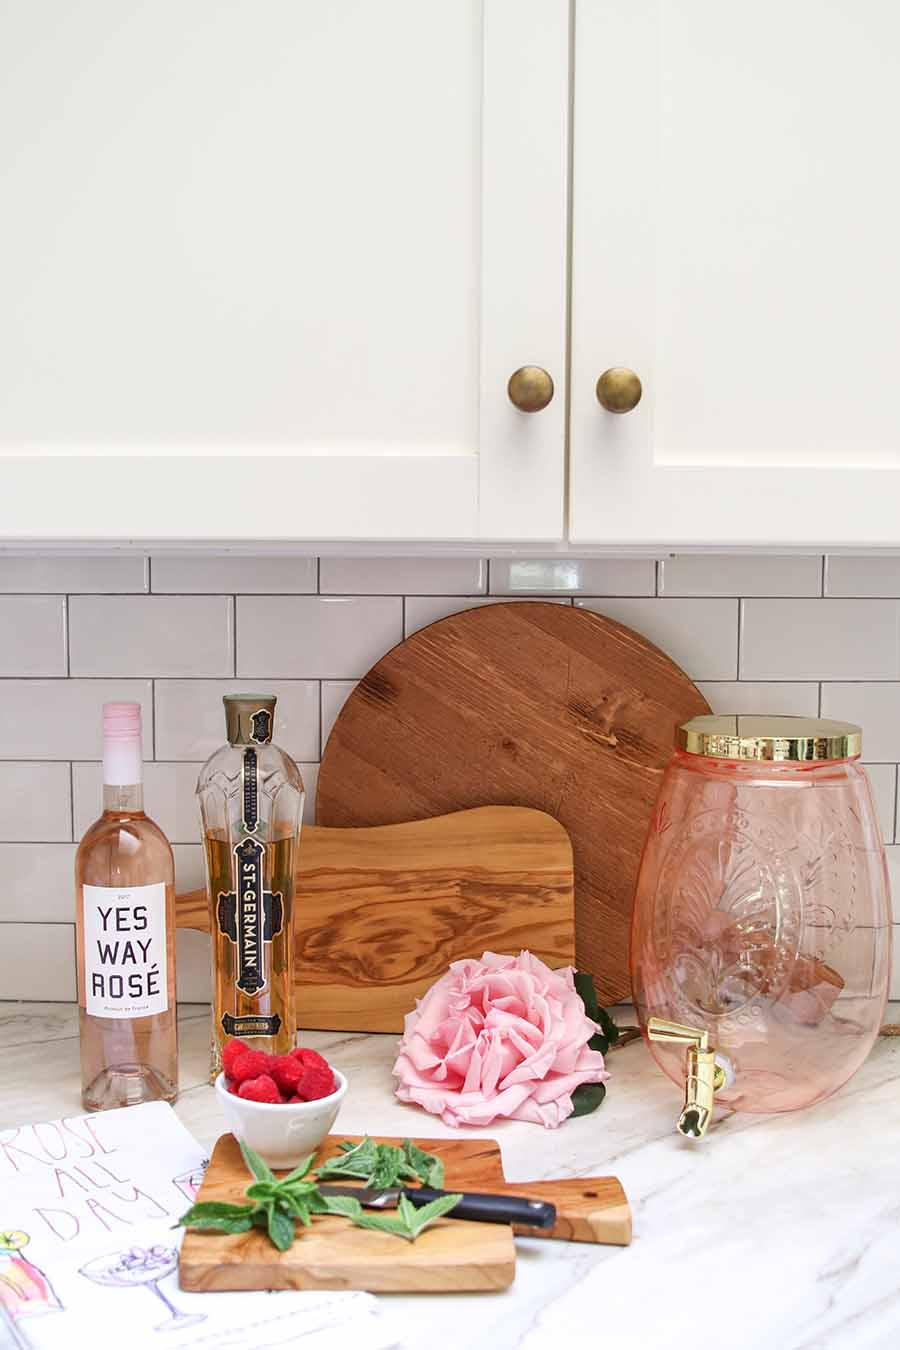 rose cocktail recipe